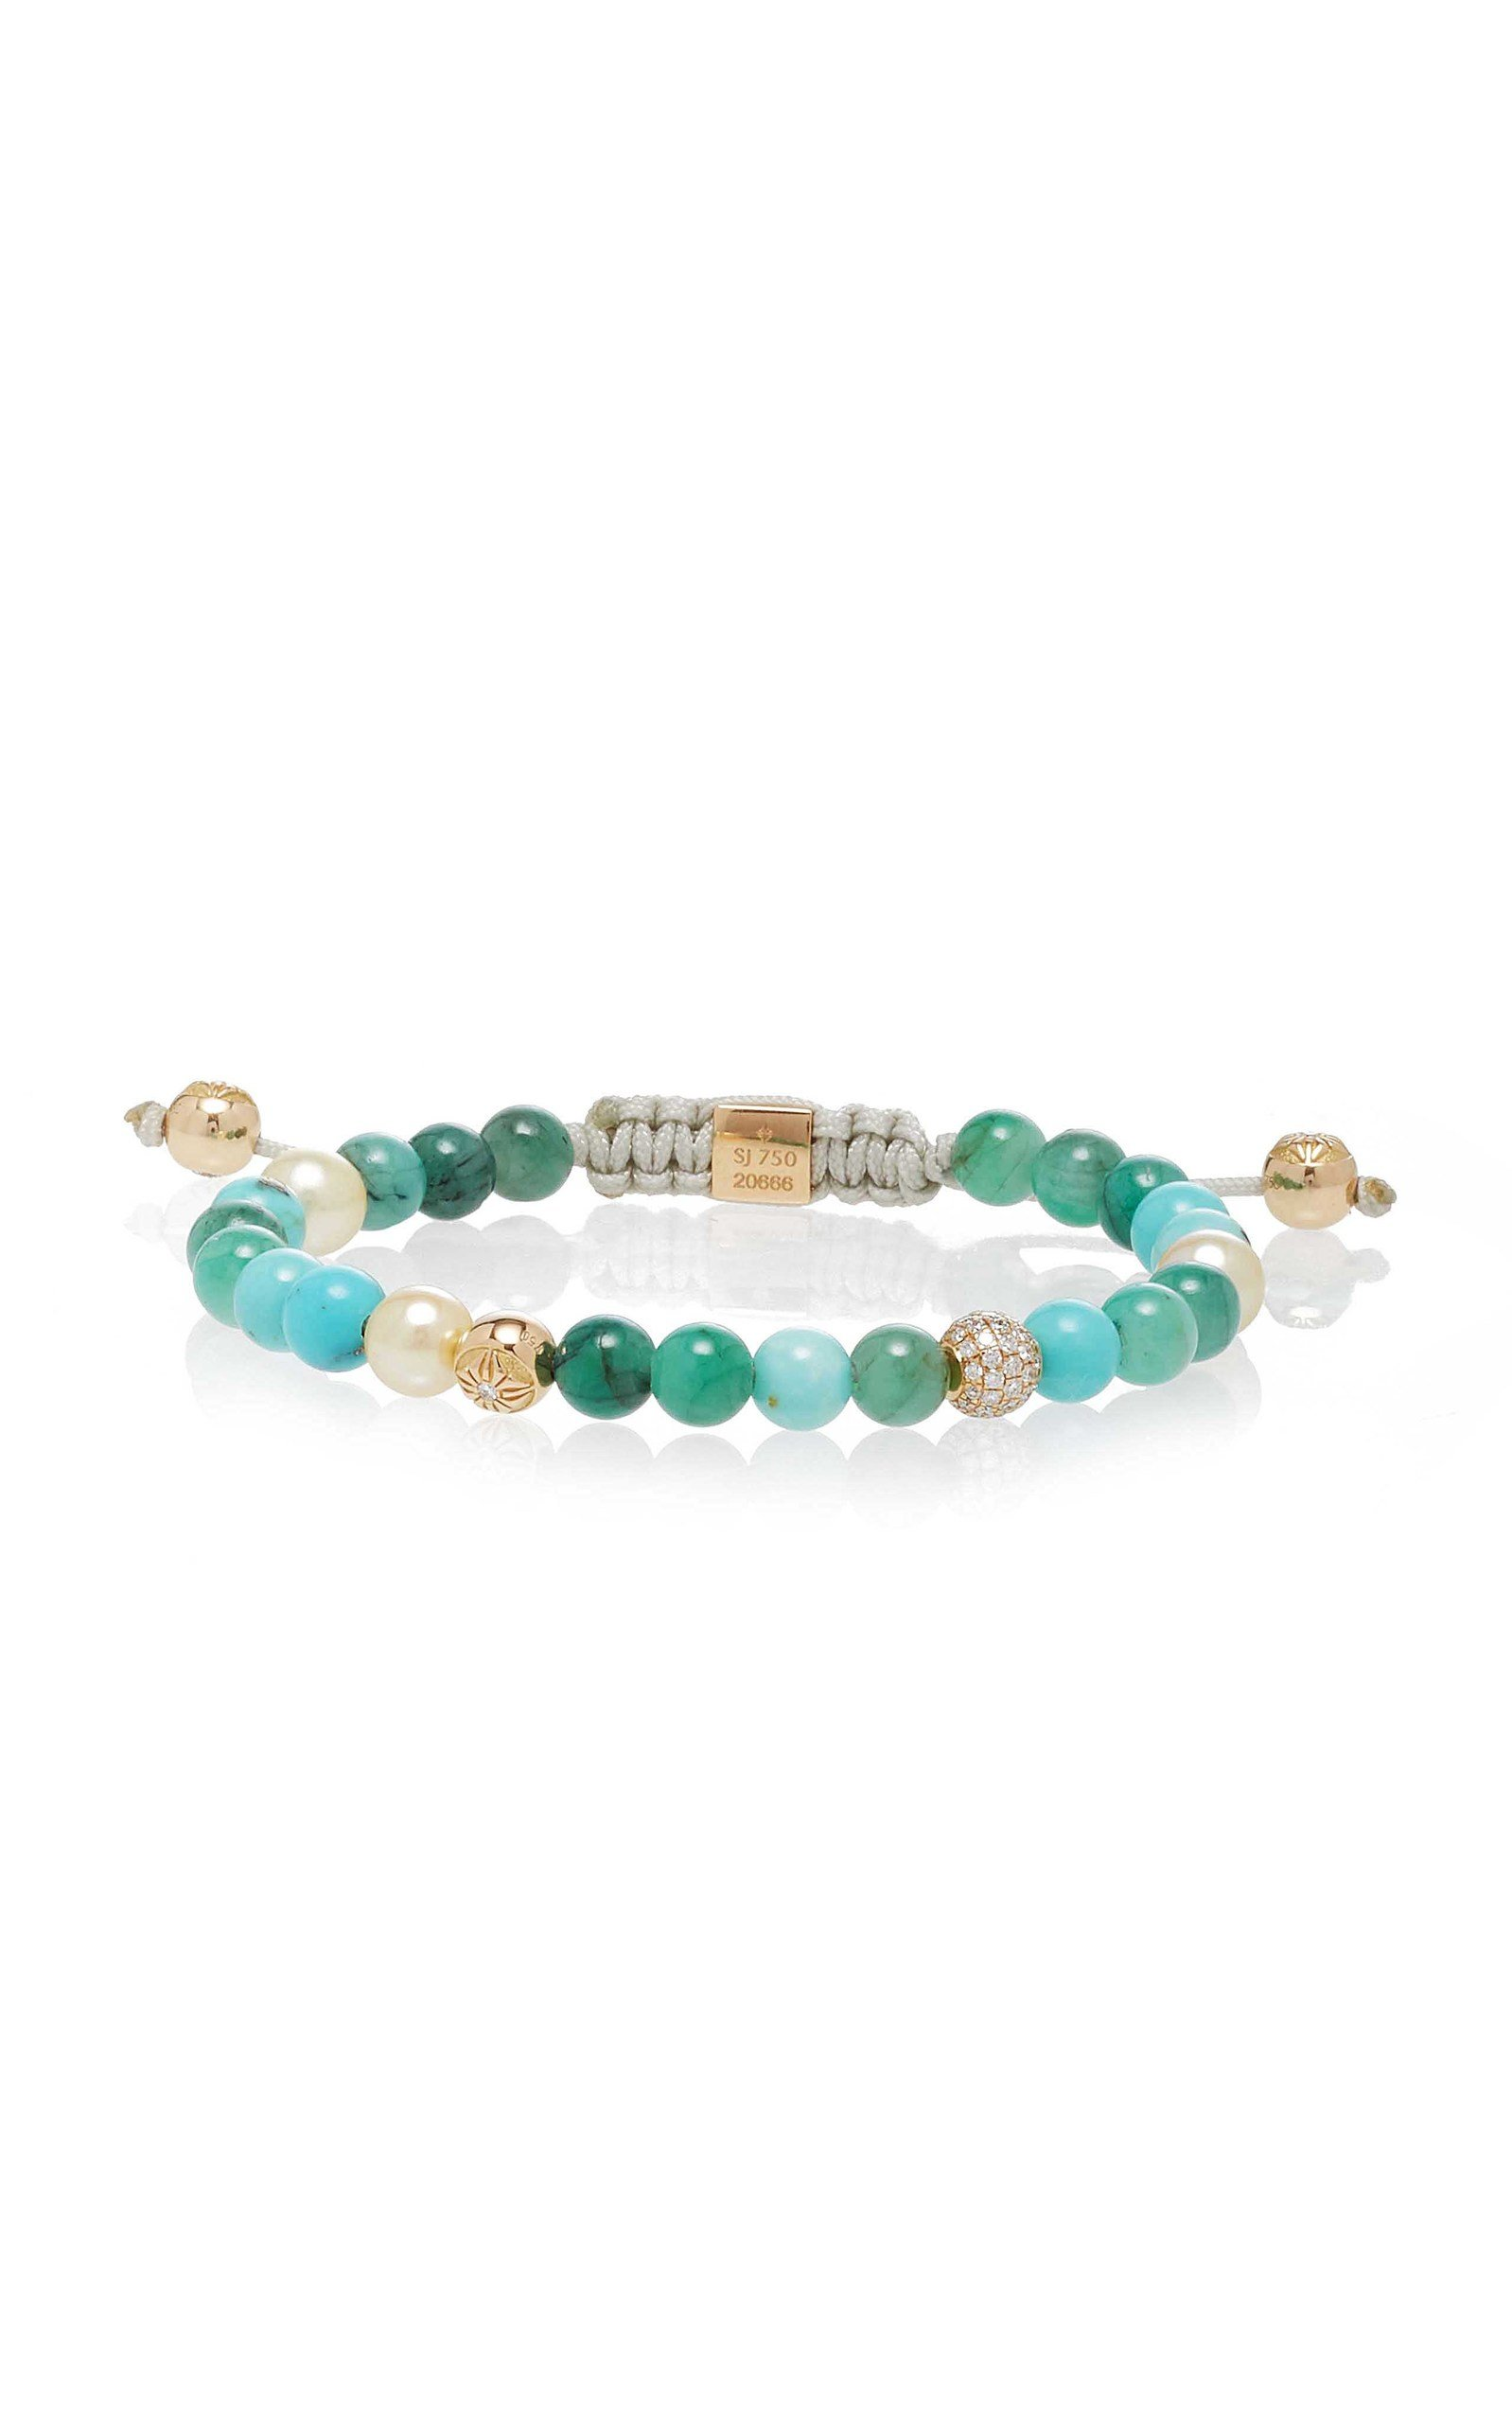 SHAMBALLA JEWELS NON-BRAIDED EMERALD AND TURQUOISE BRACELET